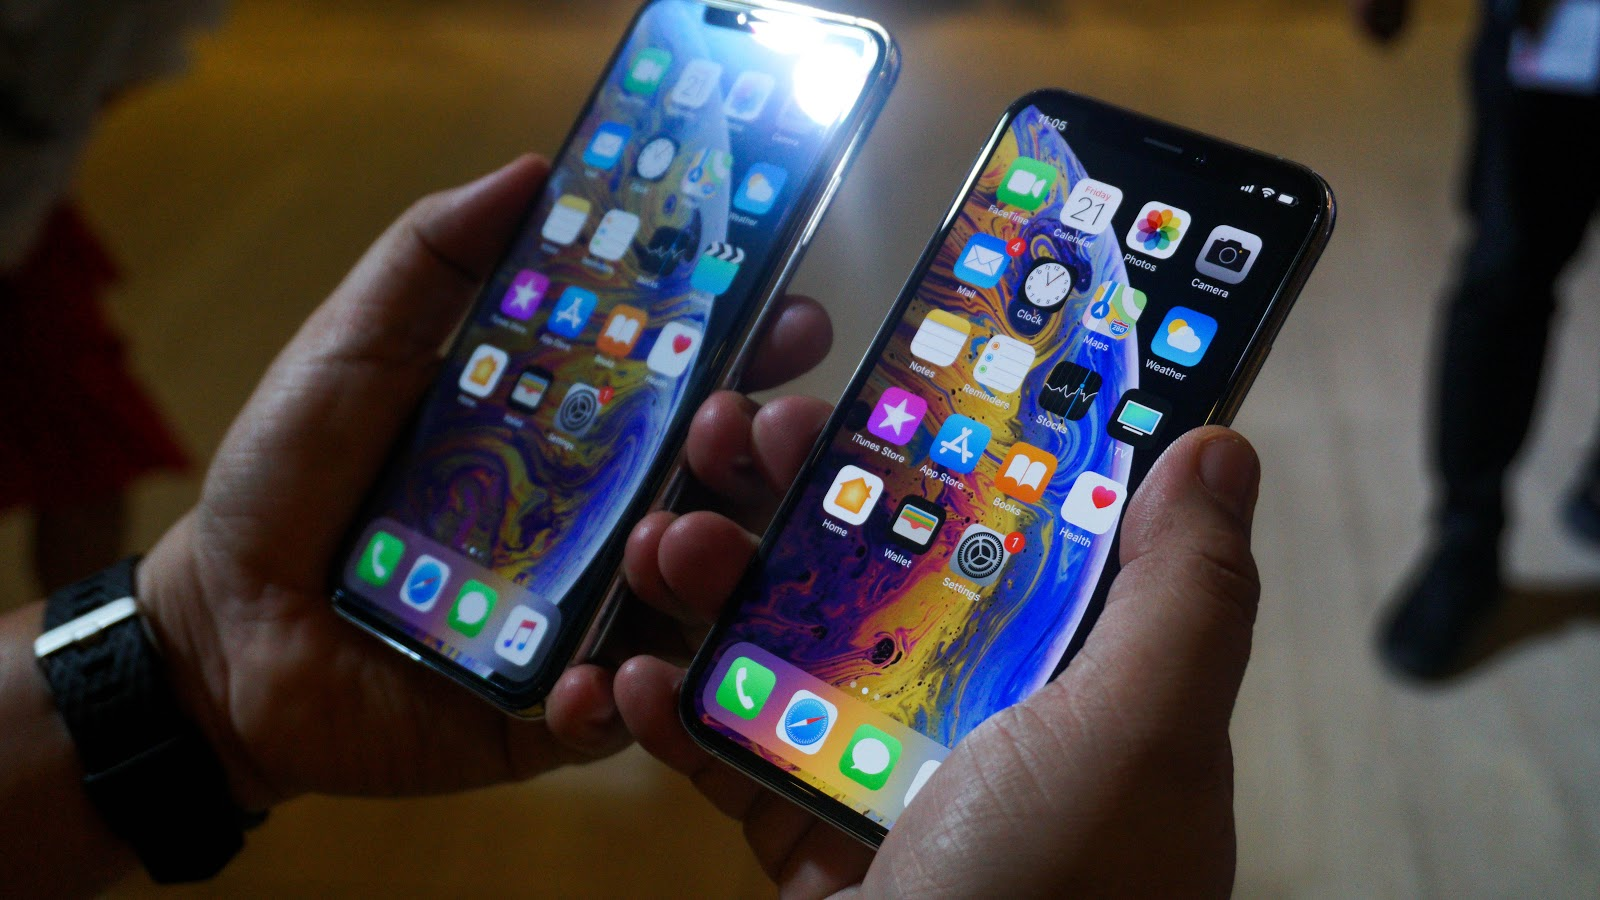 My Initial Impressions on the new iPhone XS and iPhone XS Max - Tech